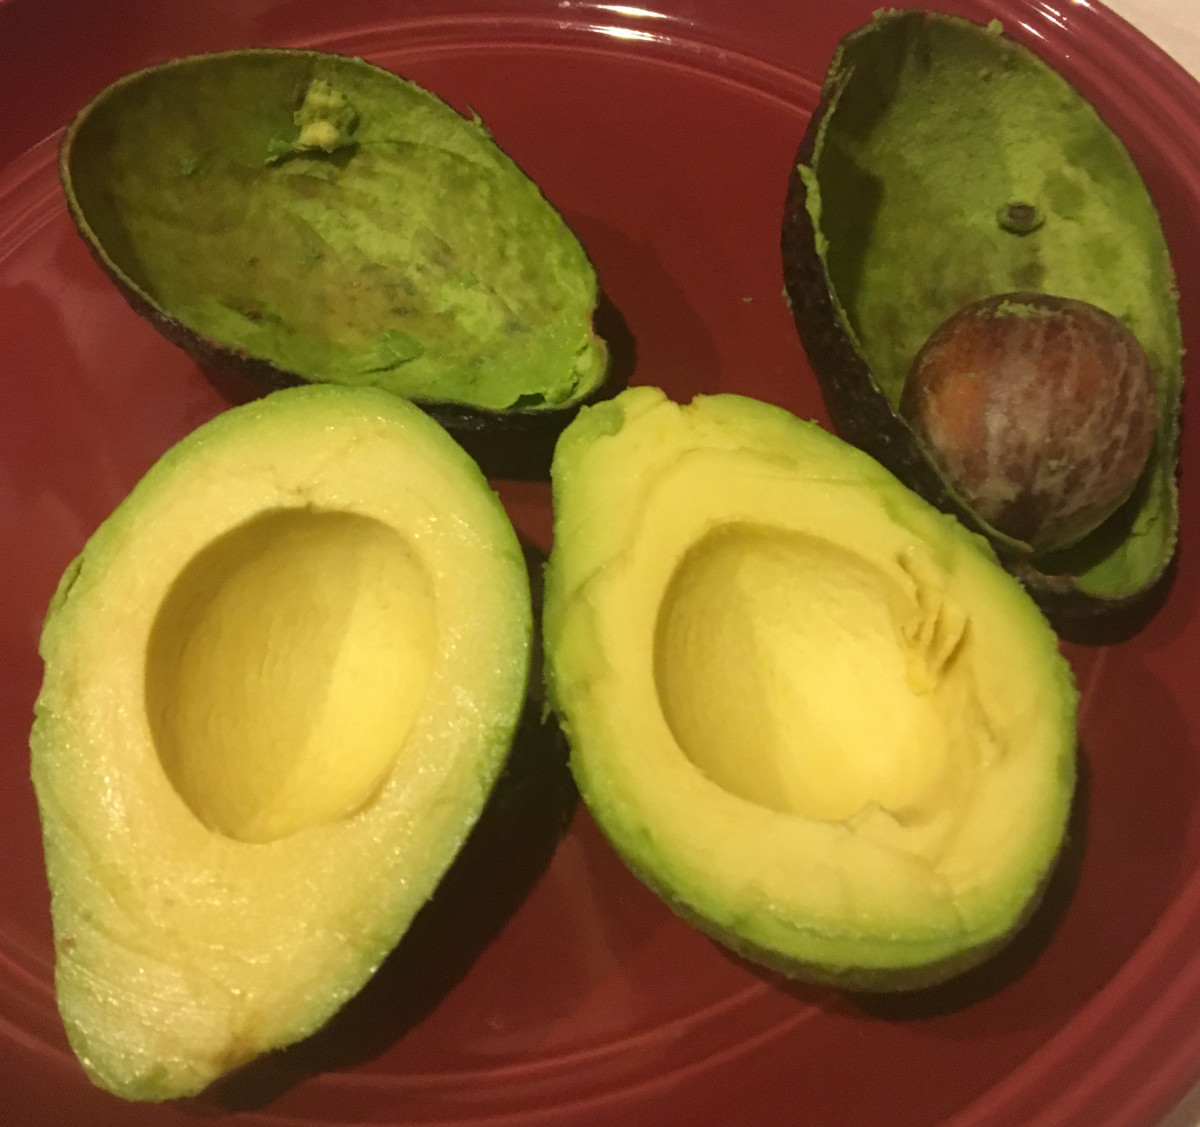 Avocado skin and stone completely removed from flesh